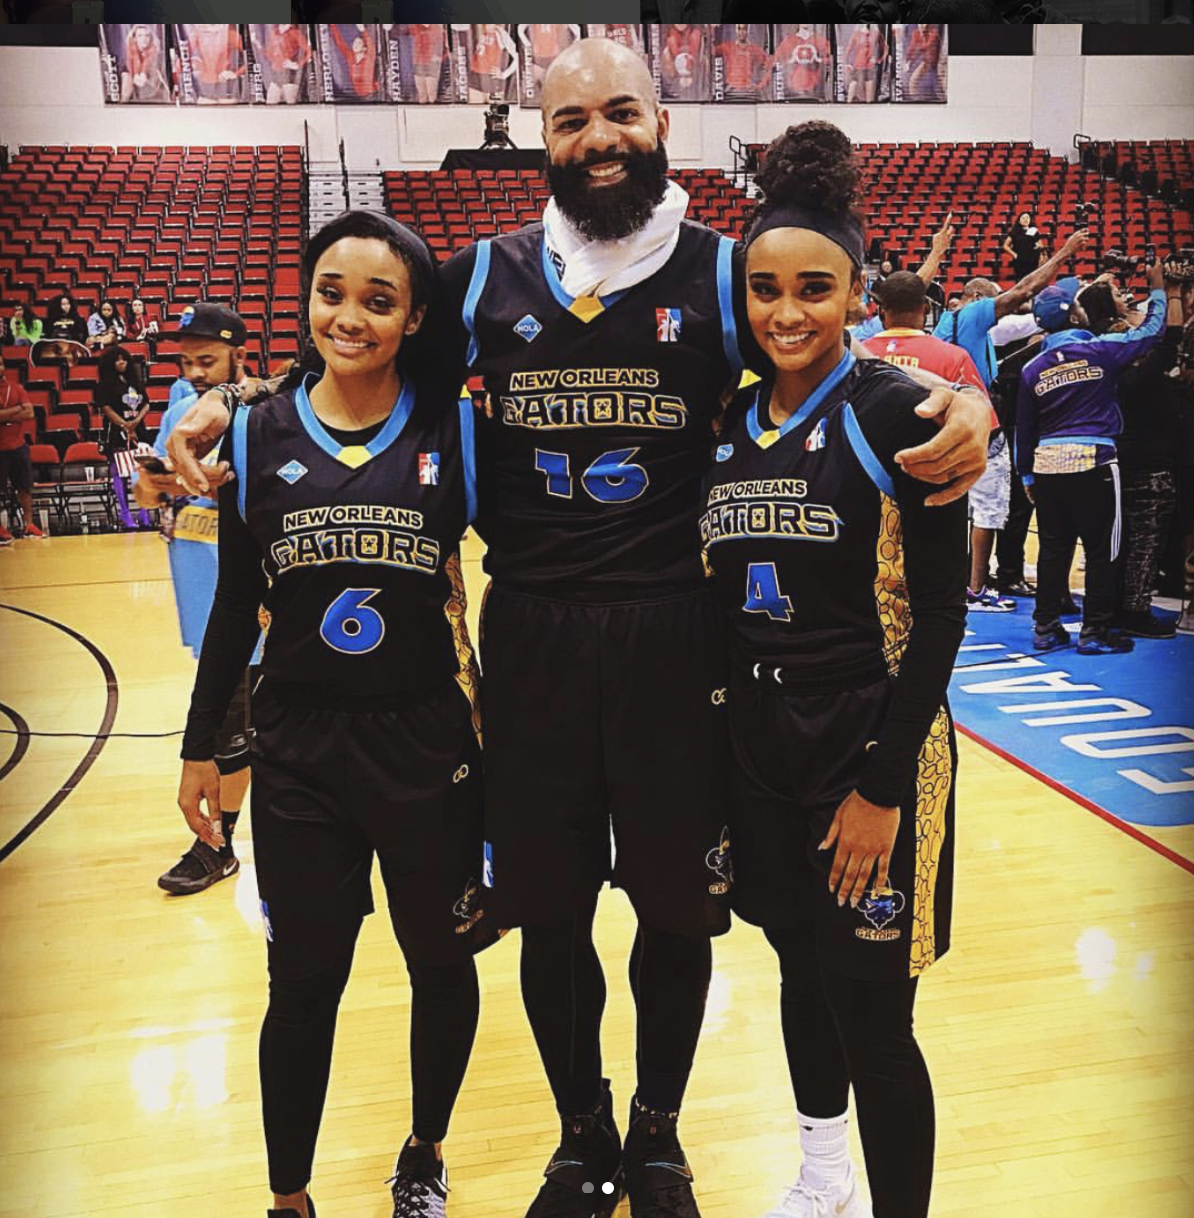 Carlos boozer with the Gonzalez Twins rocking Wooter Apparel uniforms in Las Vegas at the launch of the Global Mixed Gender Basketball League